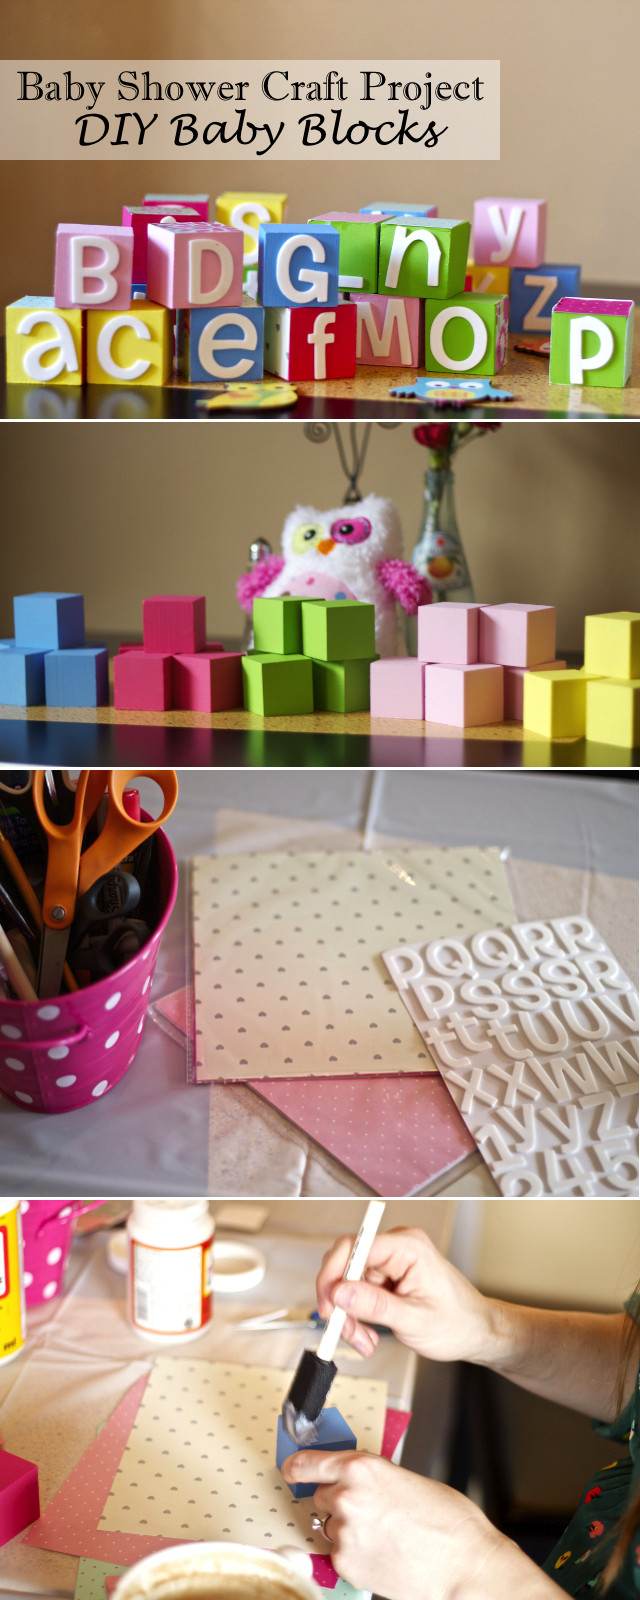 Best ideas about DIY Baby Crafts . Save or Pin Chasing Davies Baby Shower Craft Idea DIY Baby Blocks Now.